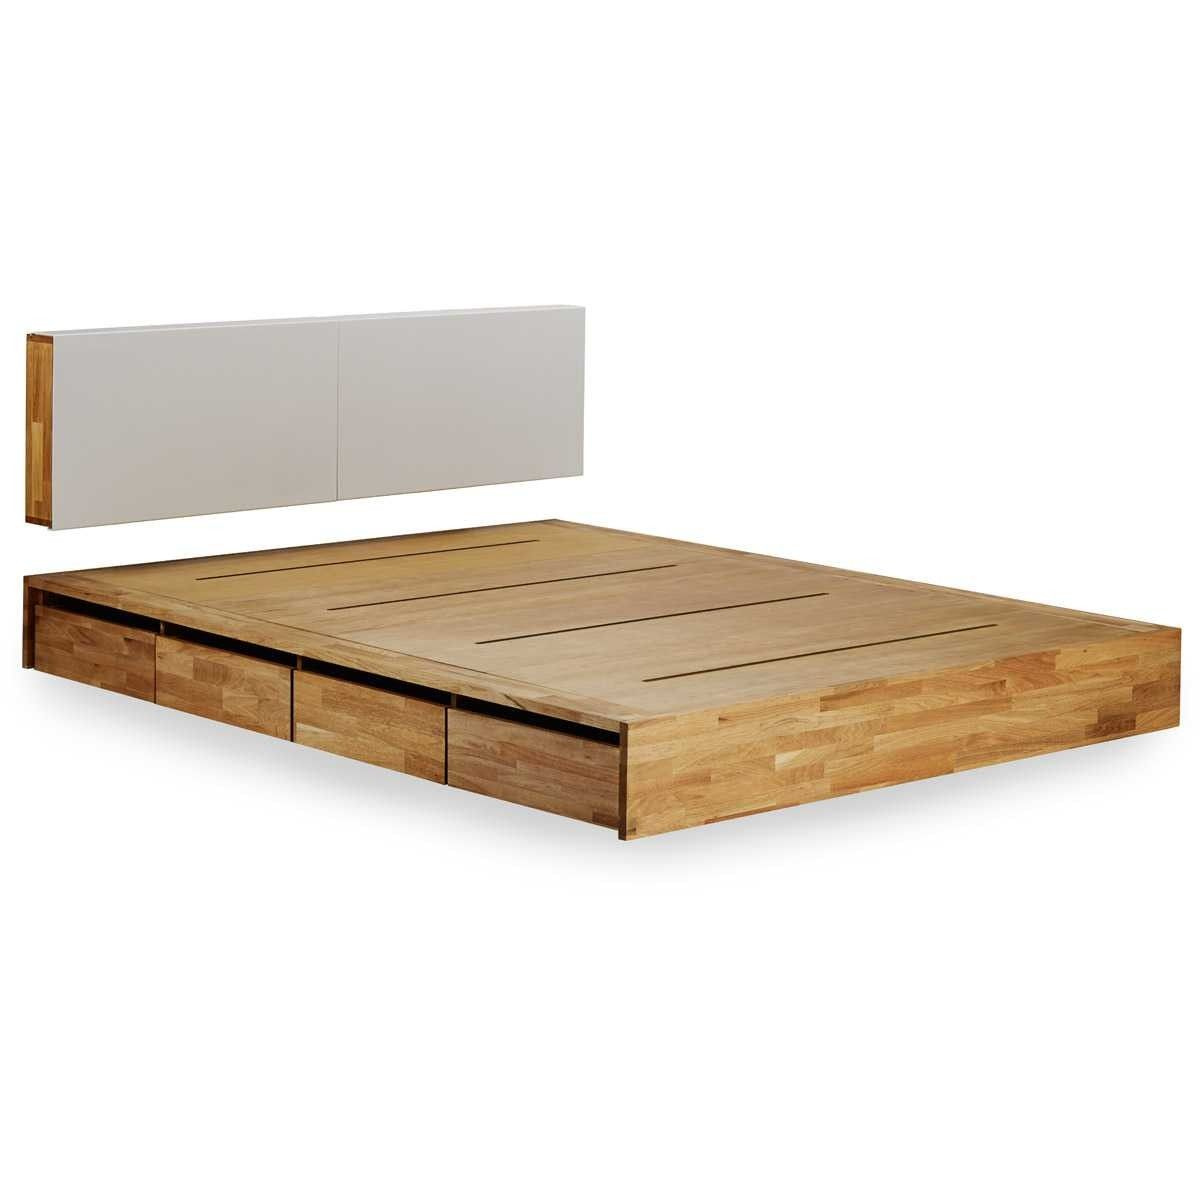 The History Of Full Size Platform Beds